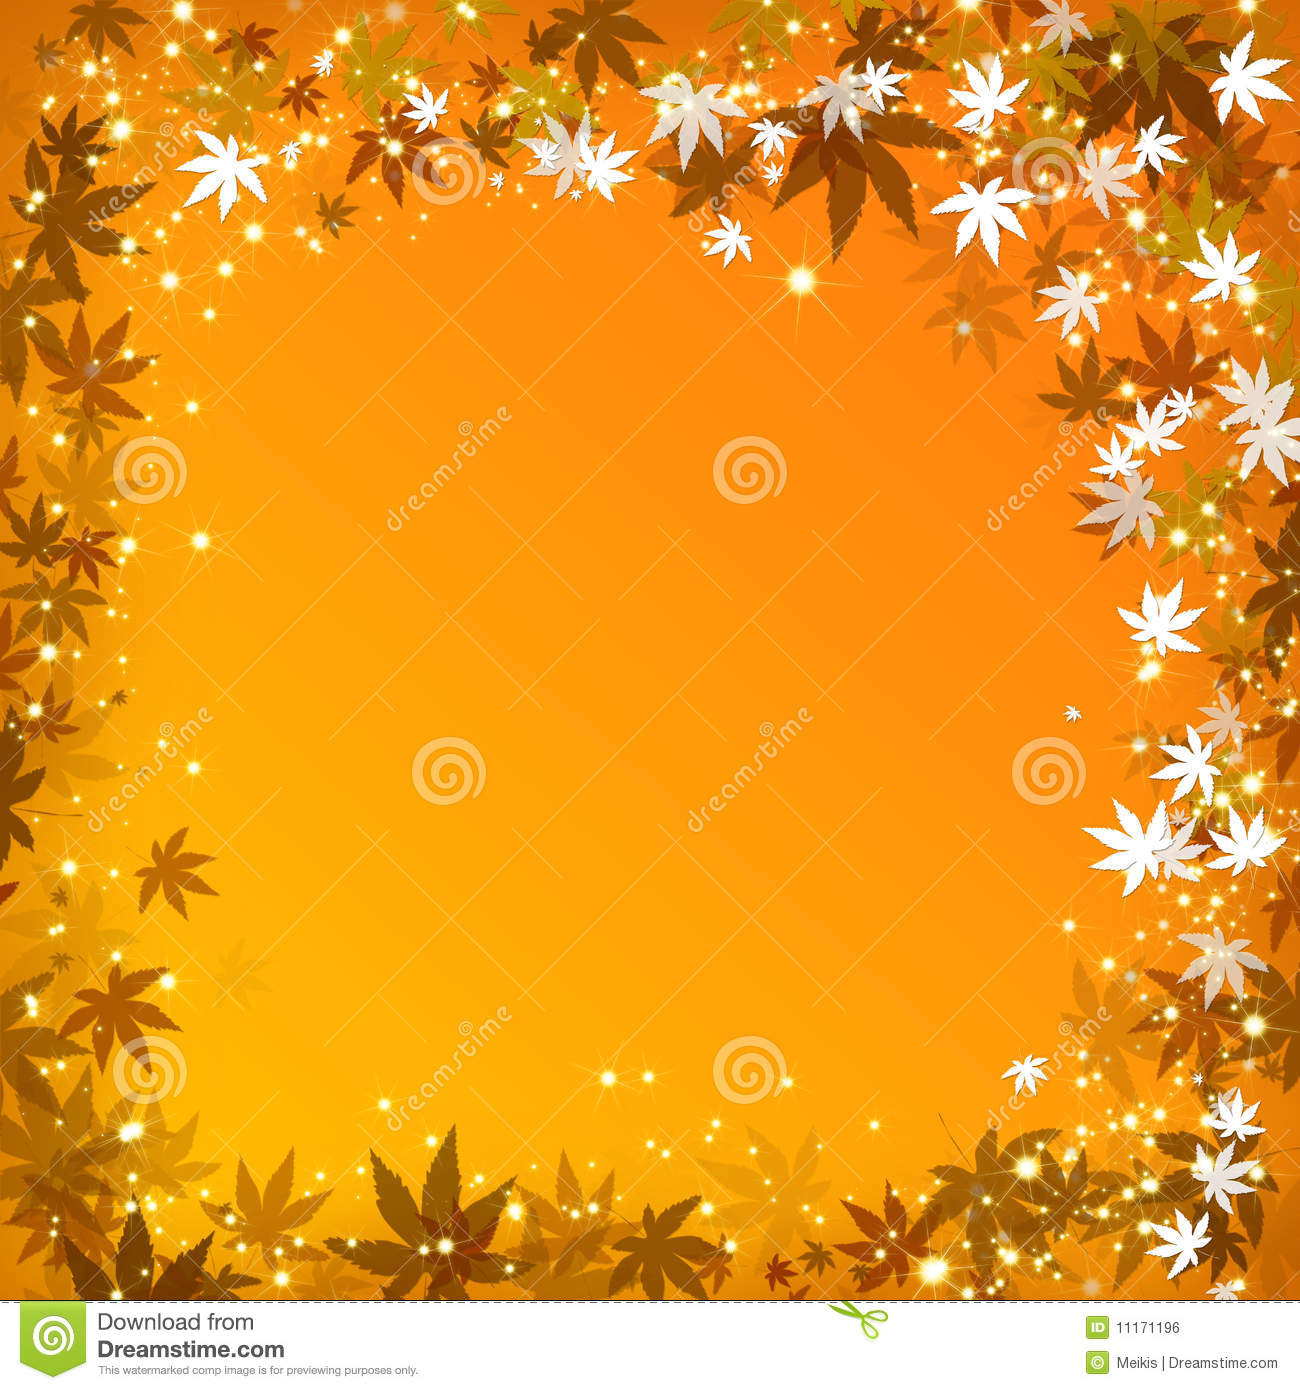 Abstract Autumn Leaves Golden Background Royalty Free